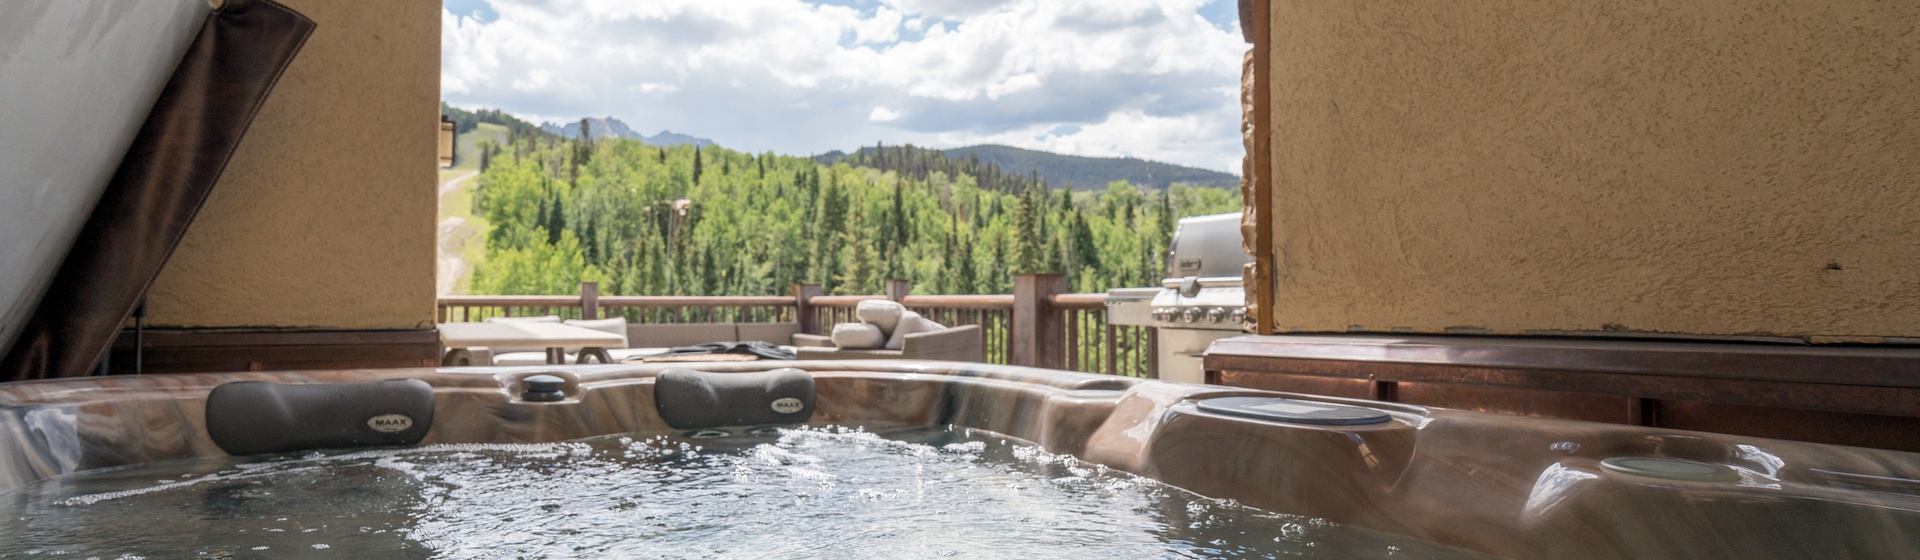 4.05-mountain-village-telemark-tower-hot-tub-view-web.jpg